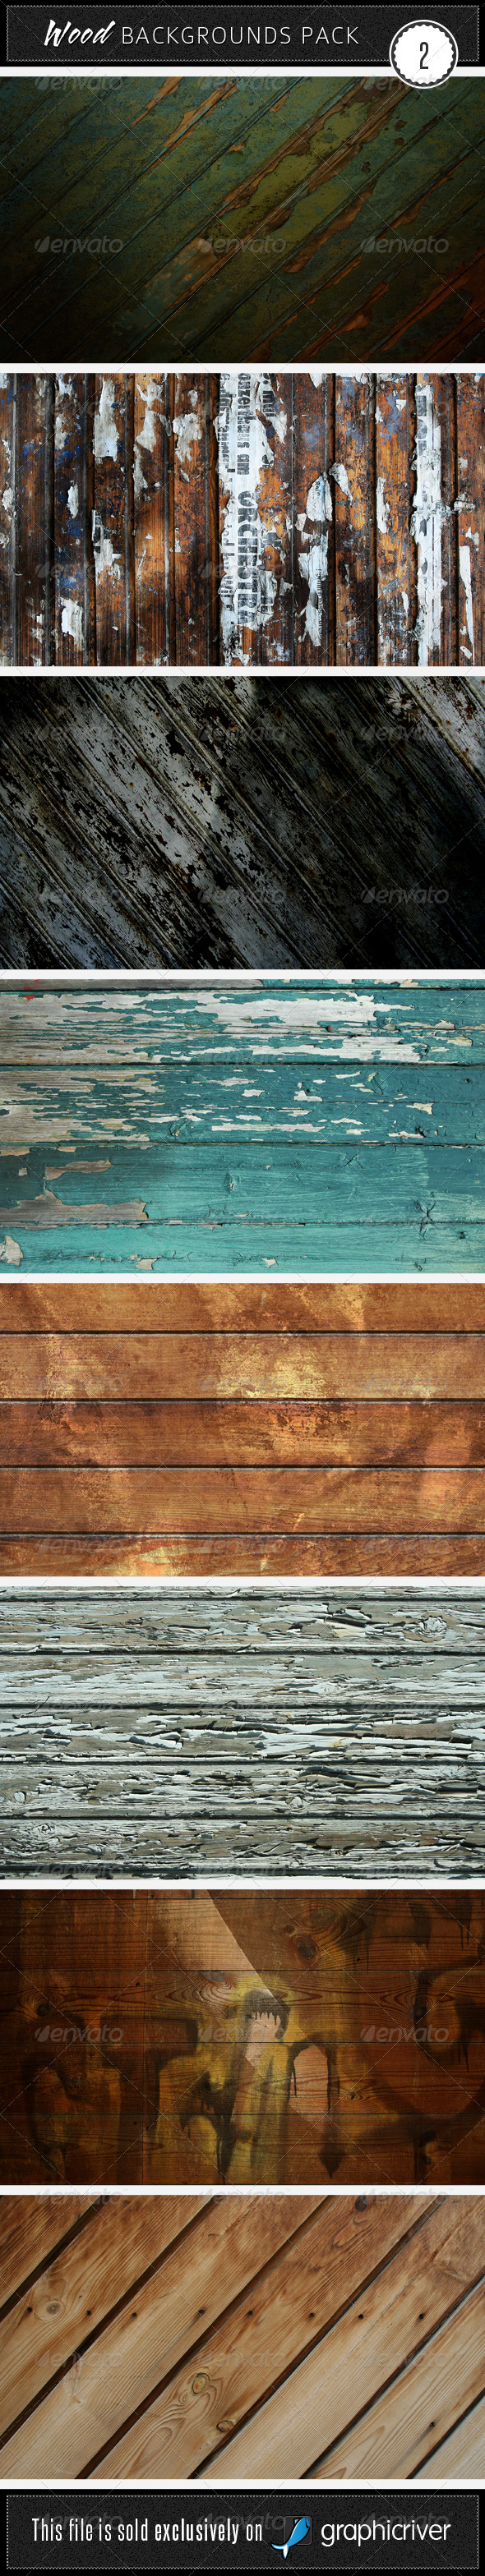 Wood Backgrounds Pack 2